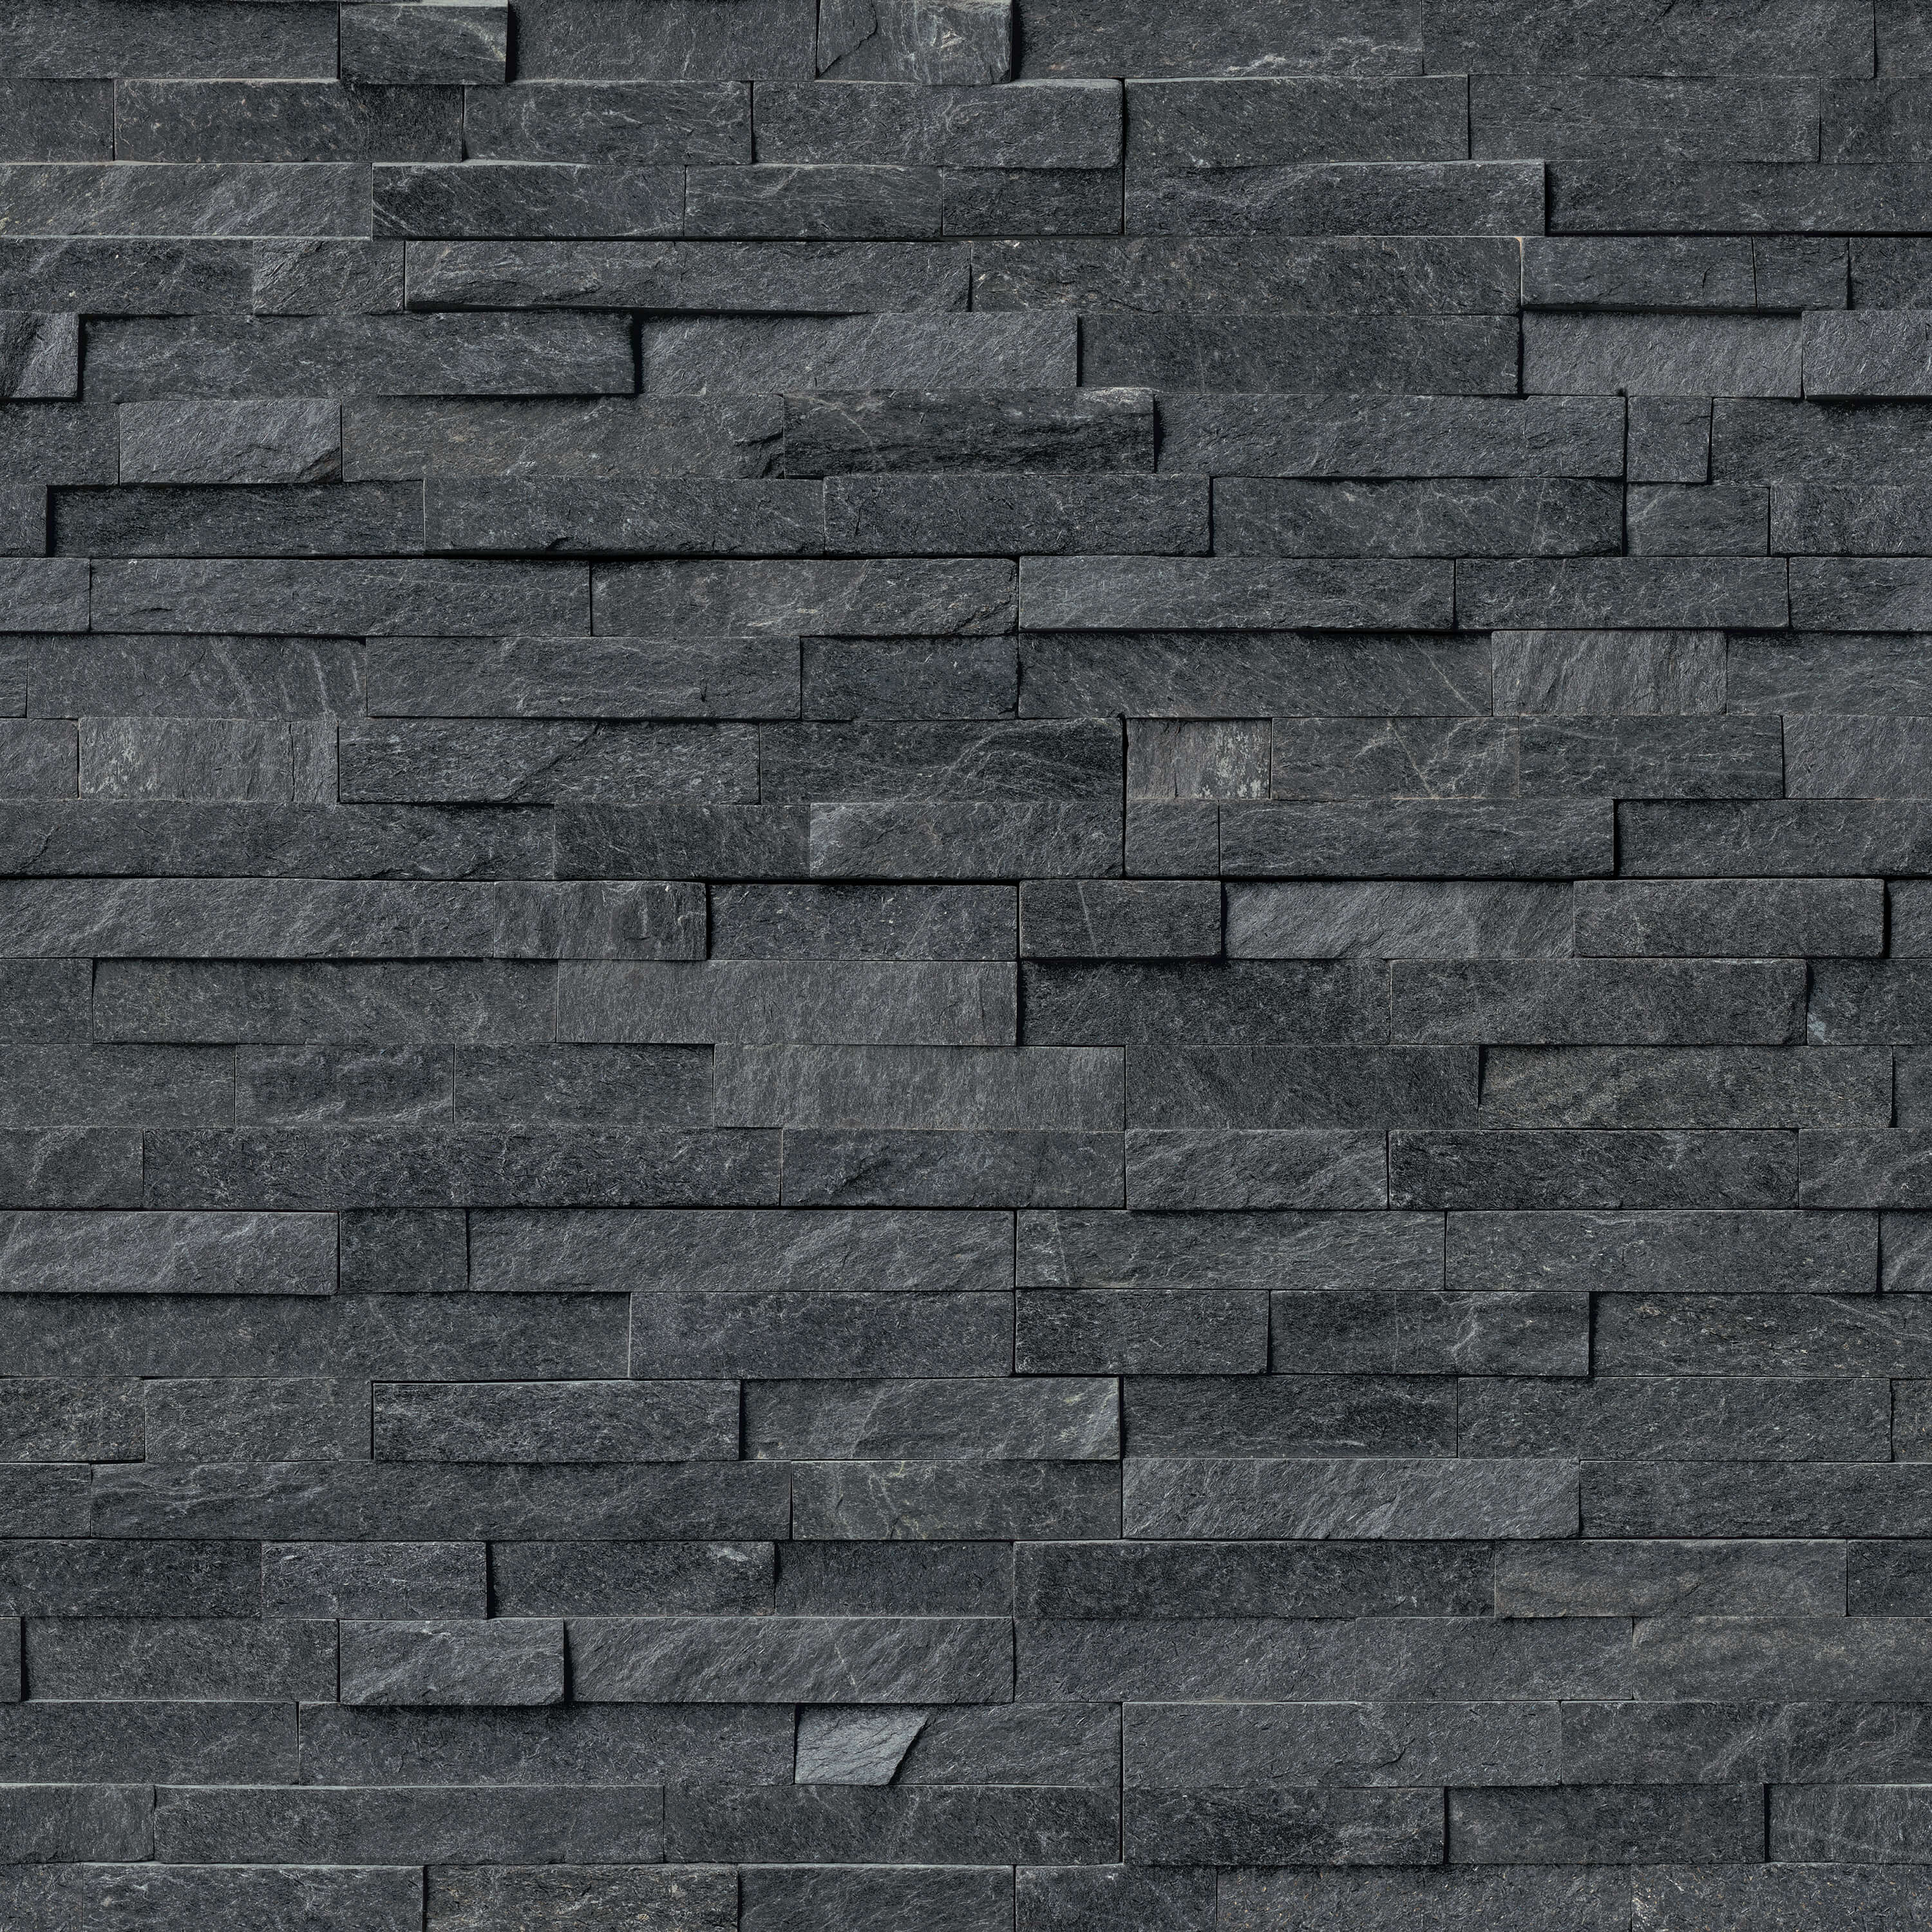 3d Wallpaper Or Wall Panel Or Wall Panels Stacked Stone Msi Coal Canyon Centurion Stone Of Iowa